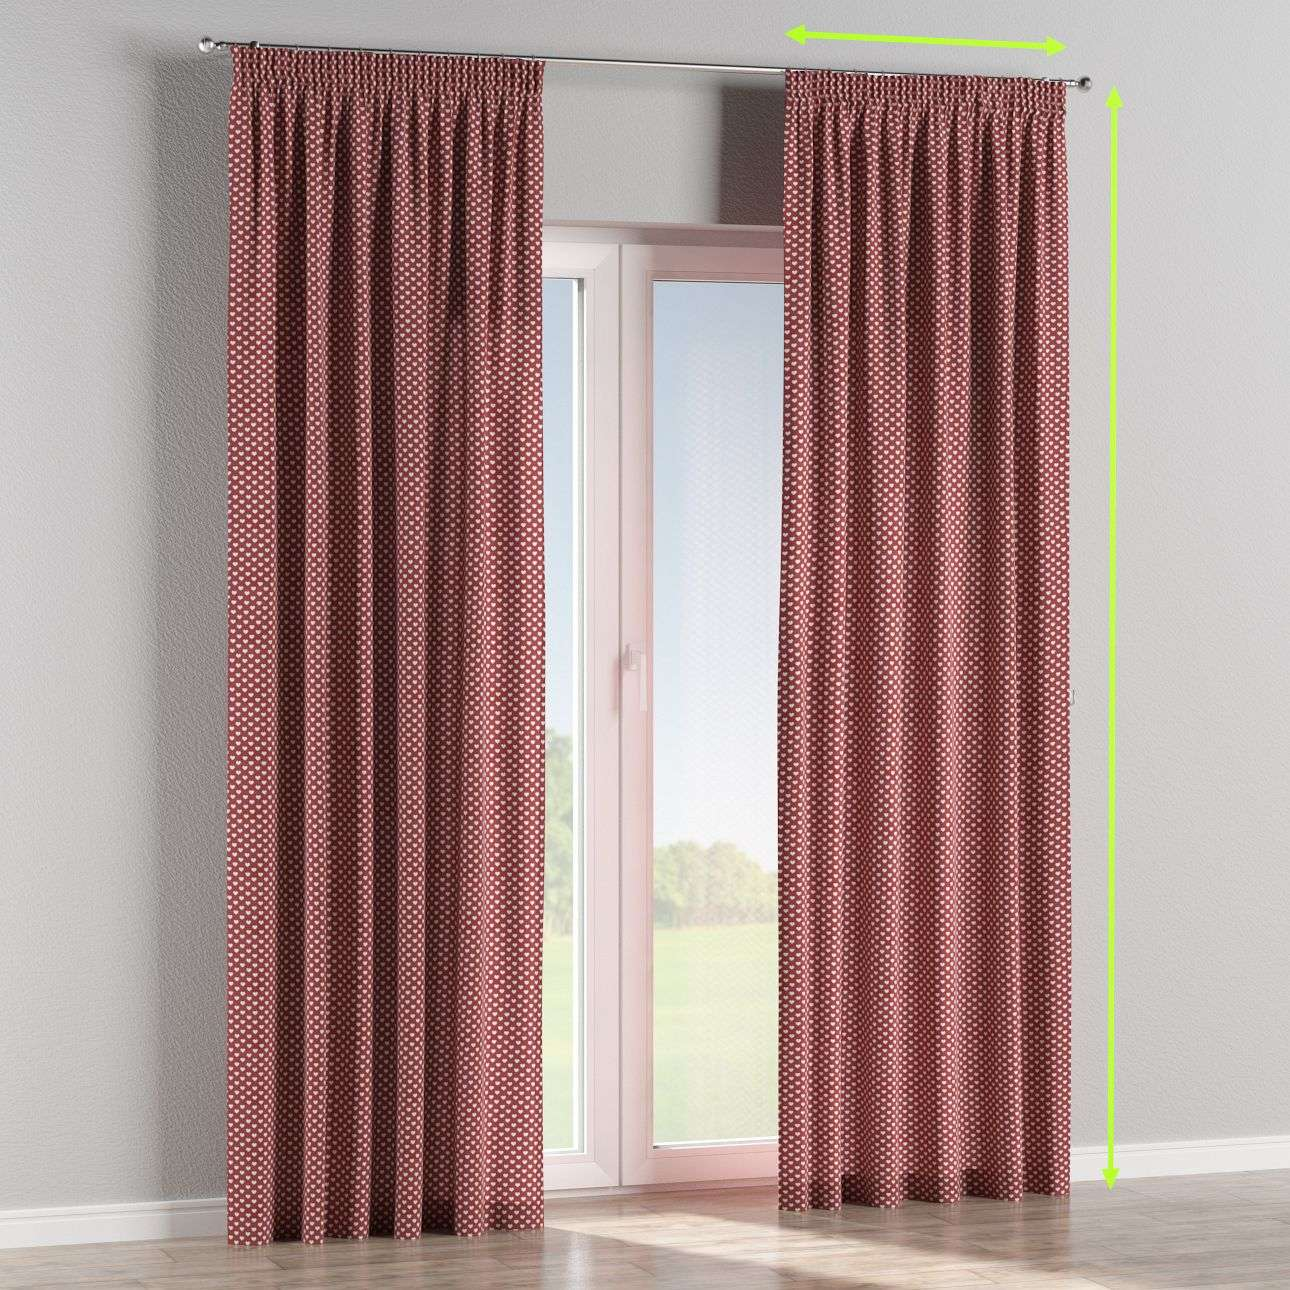 Pencil pleat lined curtains in collection Christmas , fabric: 630-40